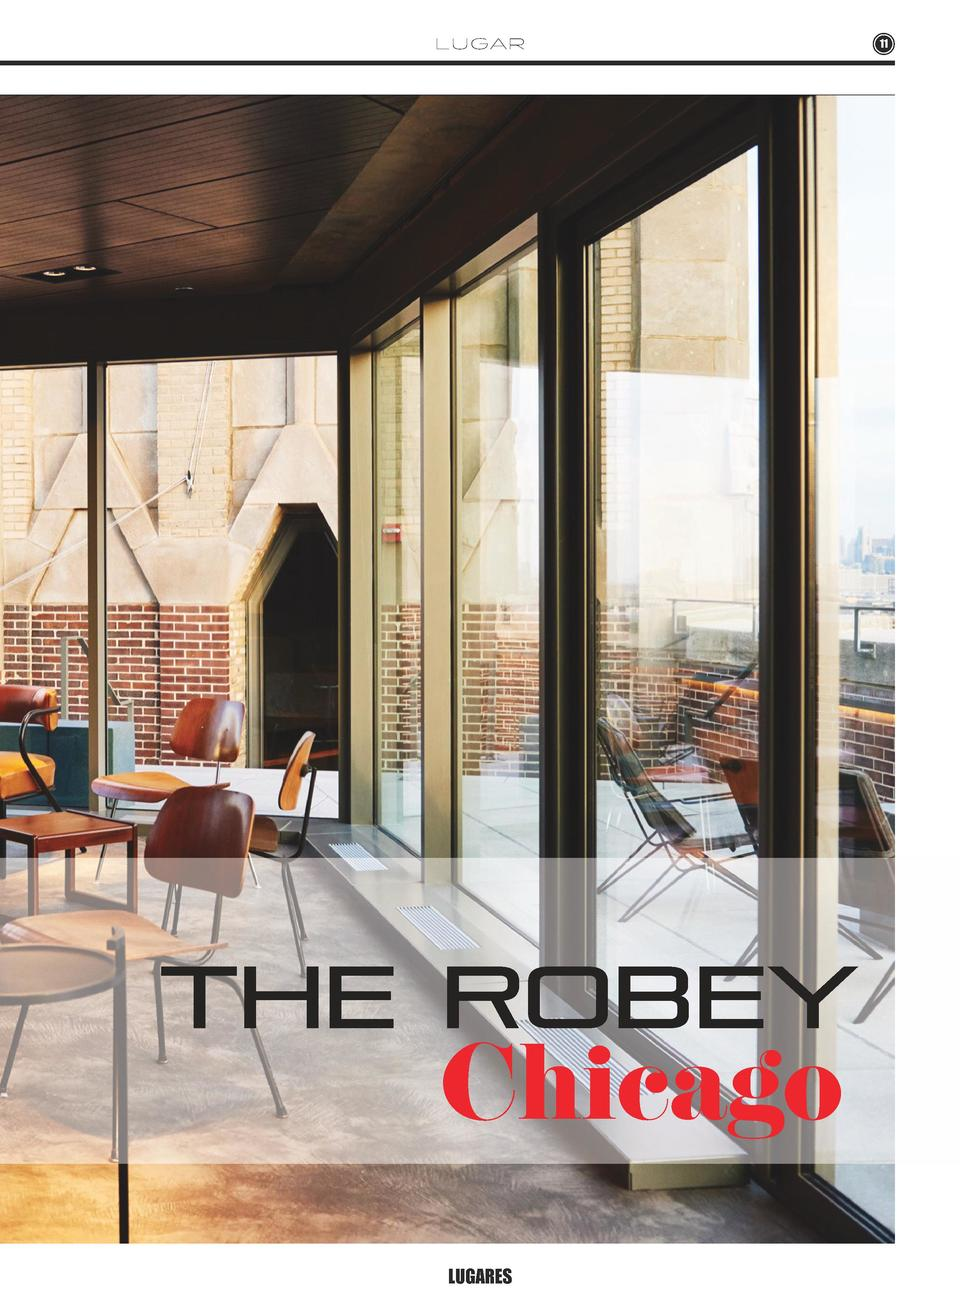 L U GA R  the robey  Chicago LUGARES  11